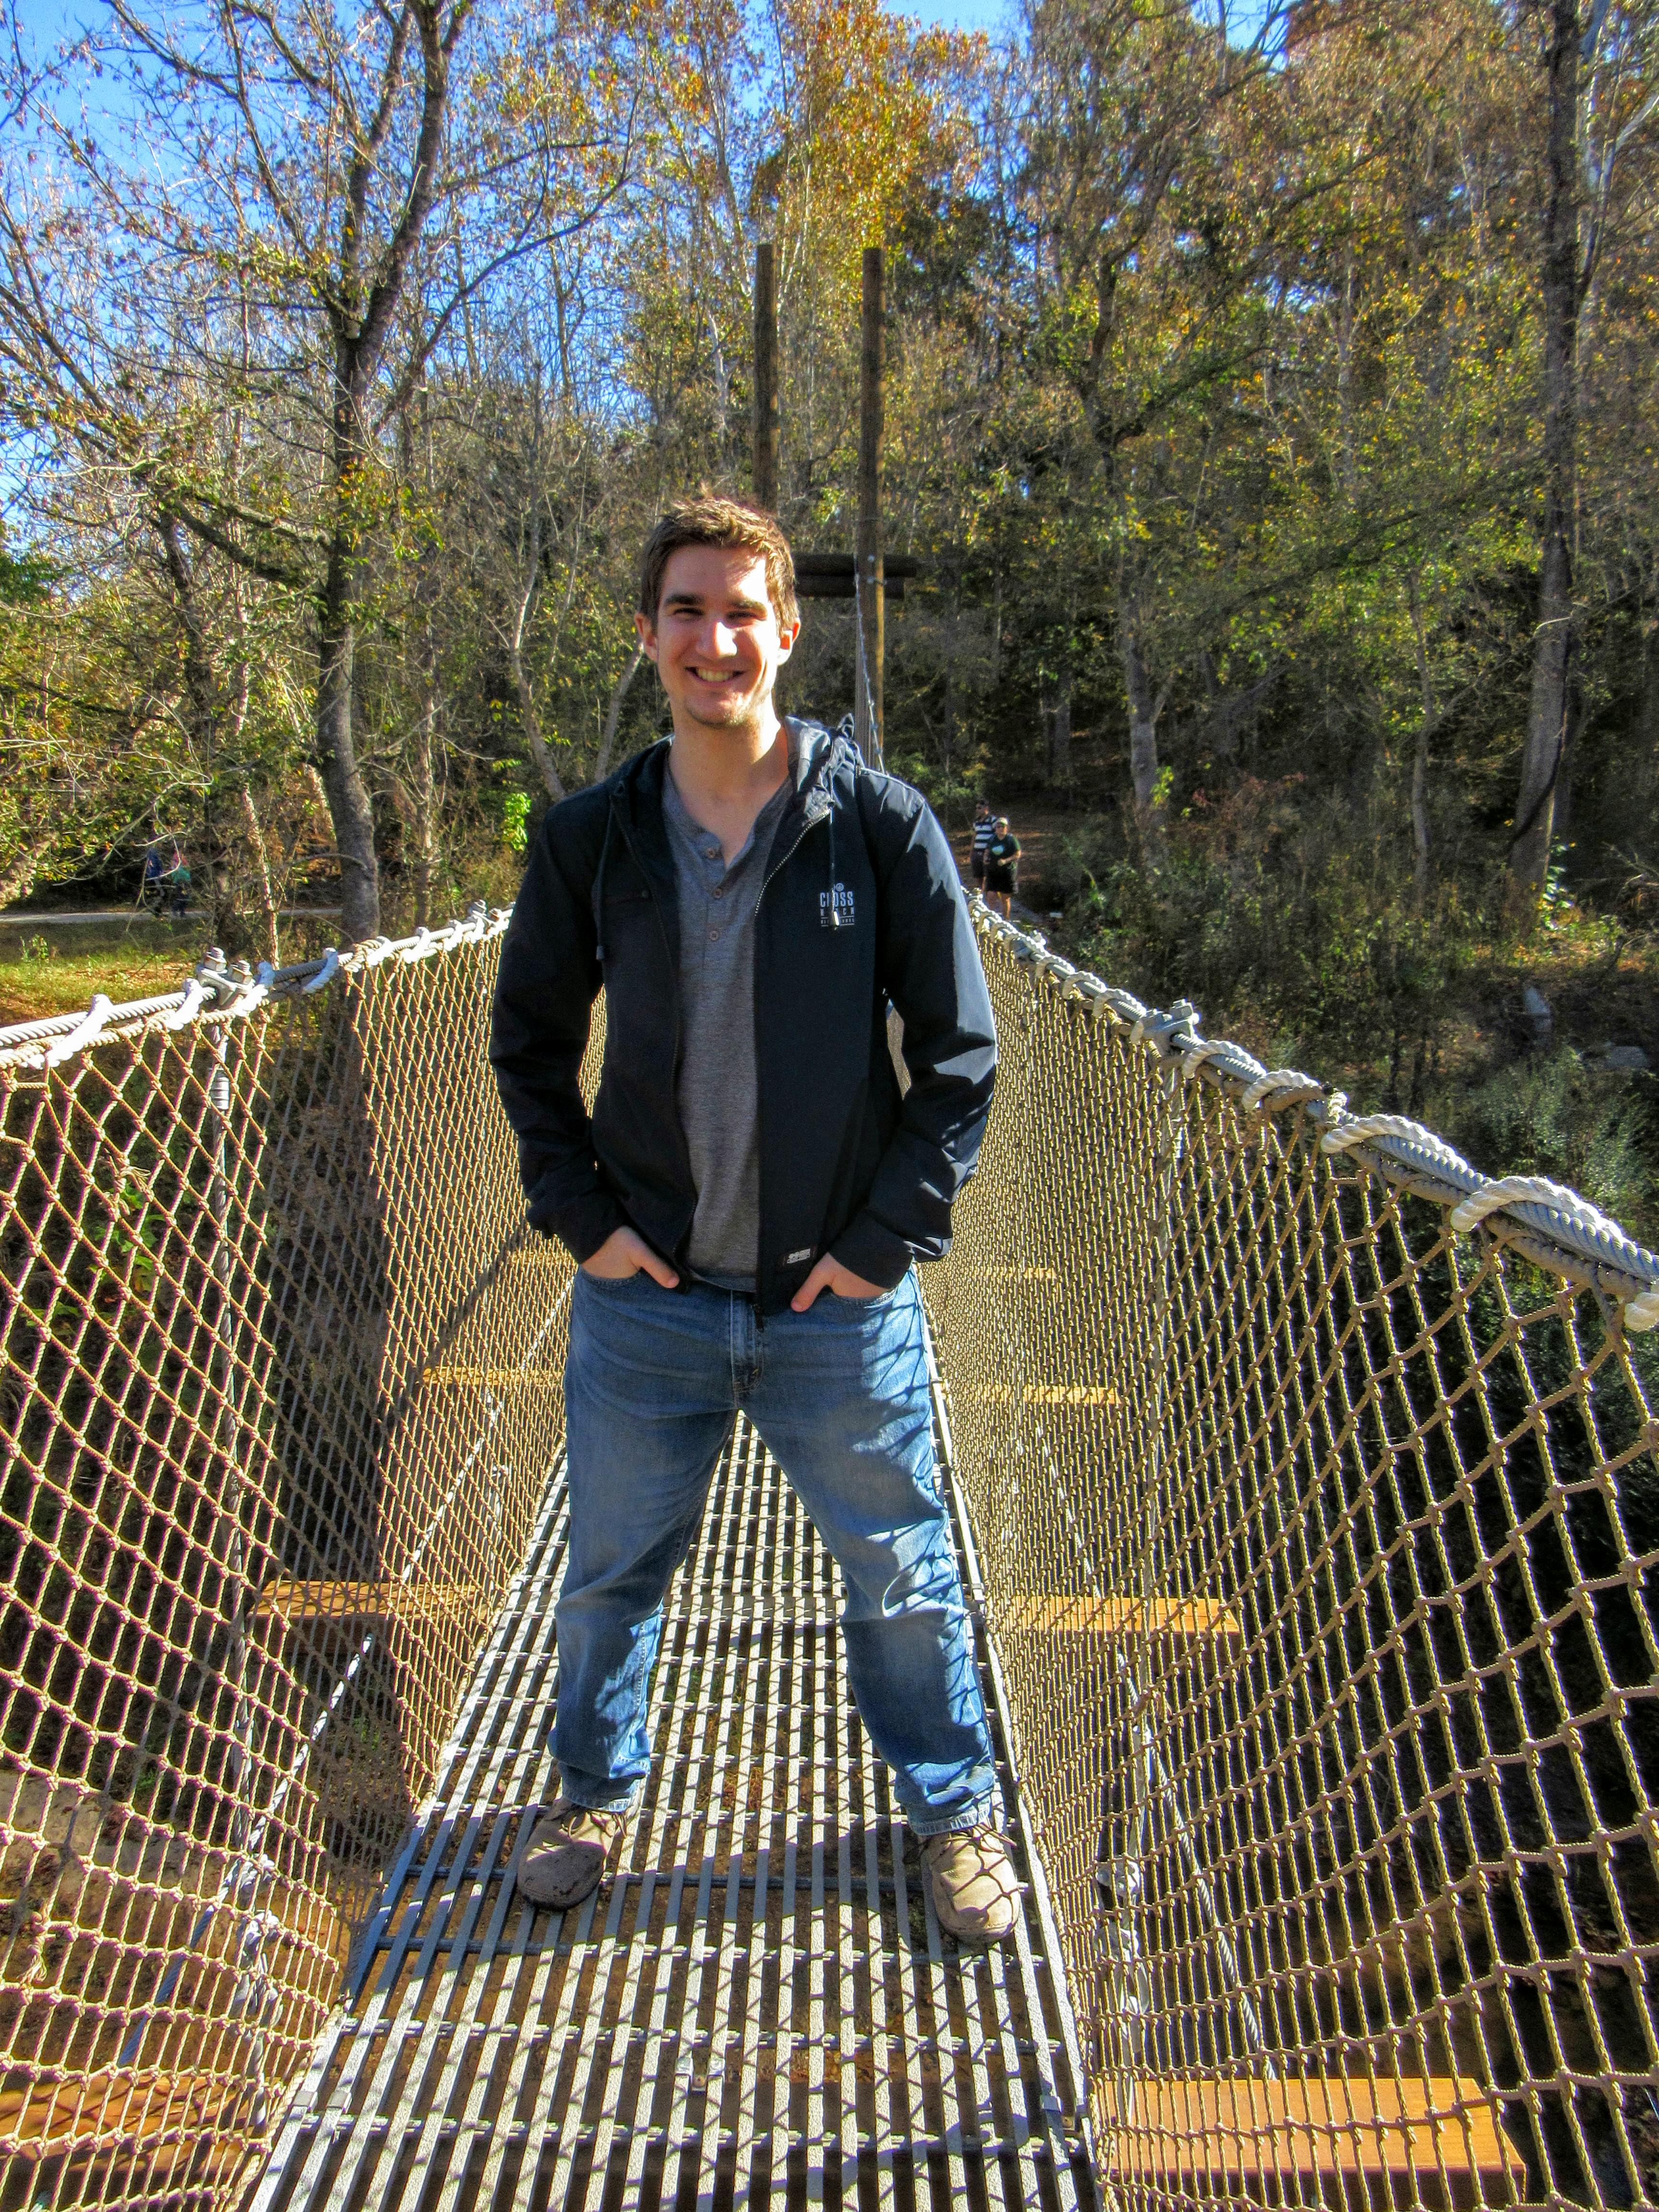 Mr. Meena on the suspension bridge. | Hiking in Shelby, North Carolina: the First Broad River Trail.